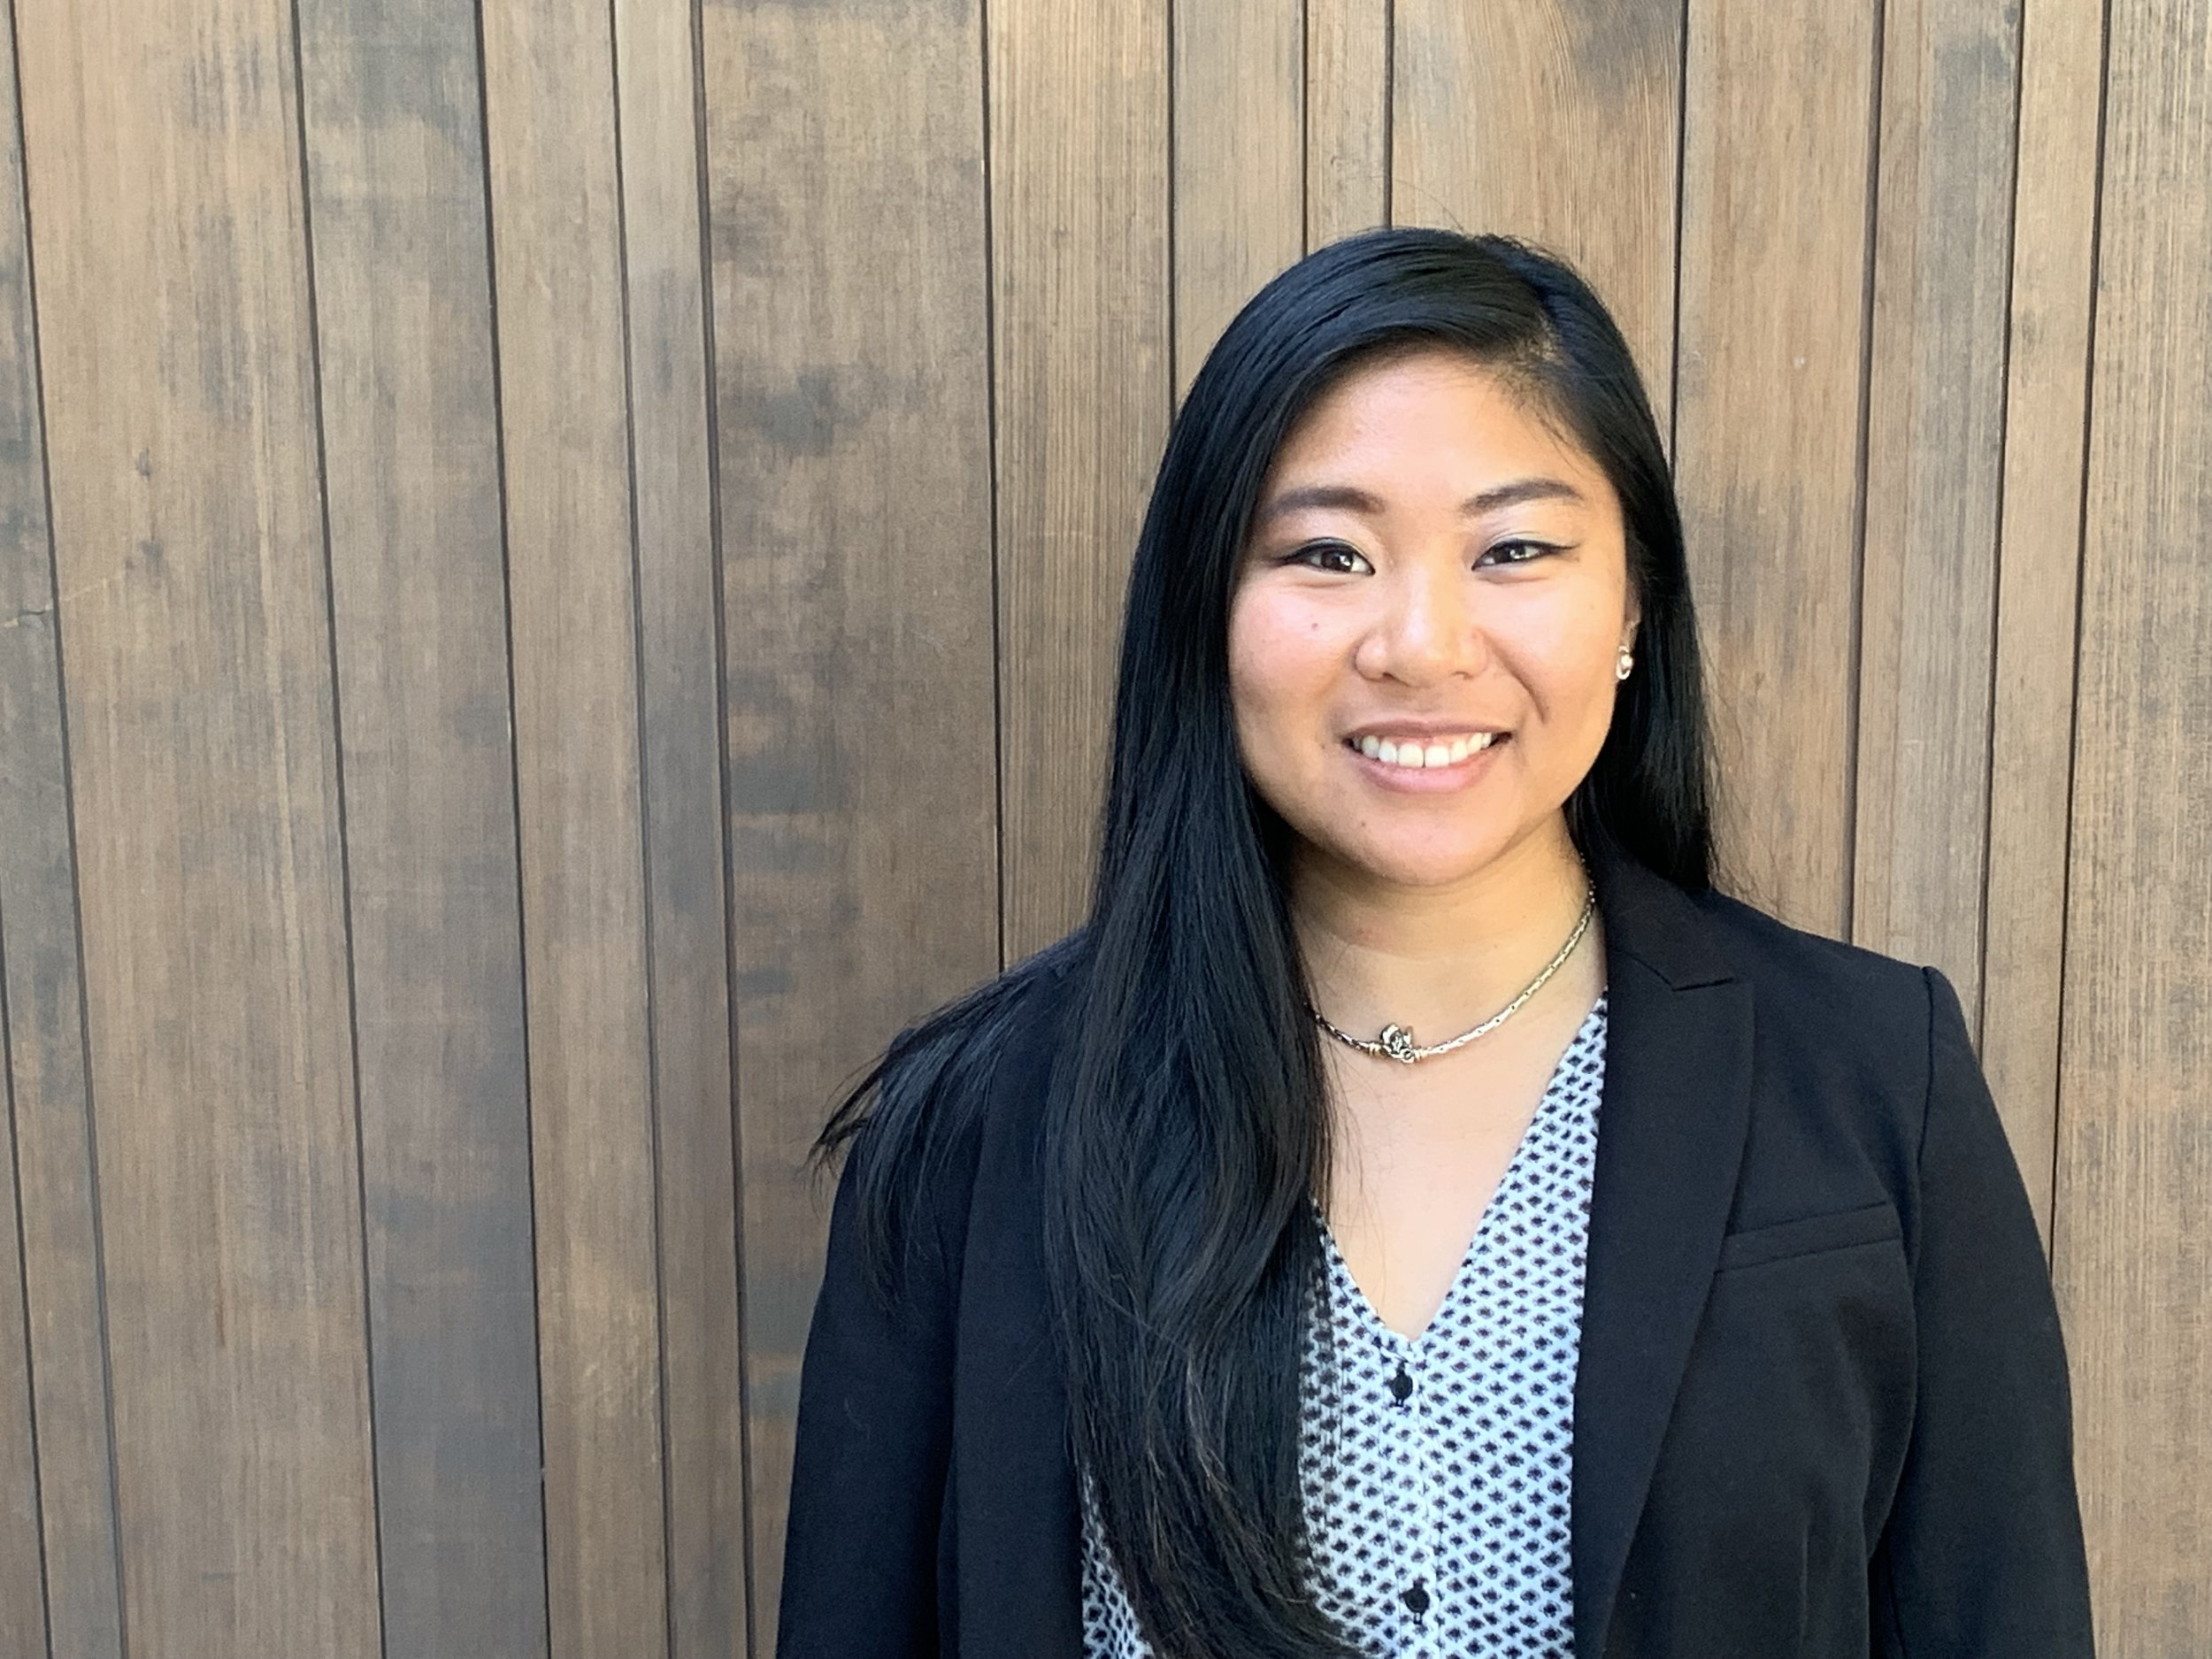 Laura Qujano joins HOPE in September 2019 as its new Communications & Fundraising Coordinator. (HOPE)